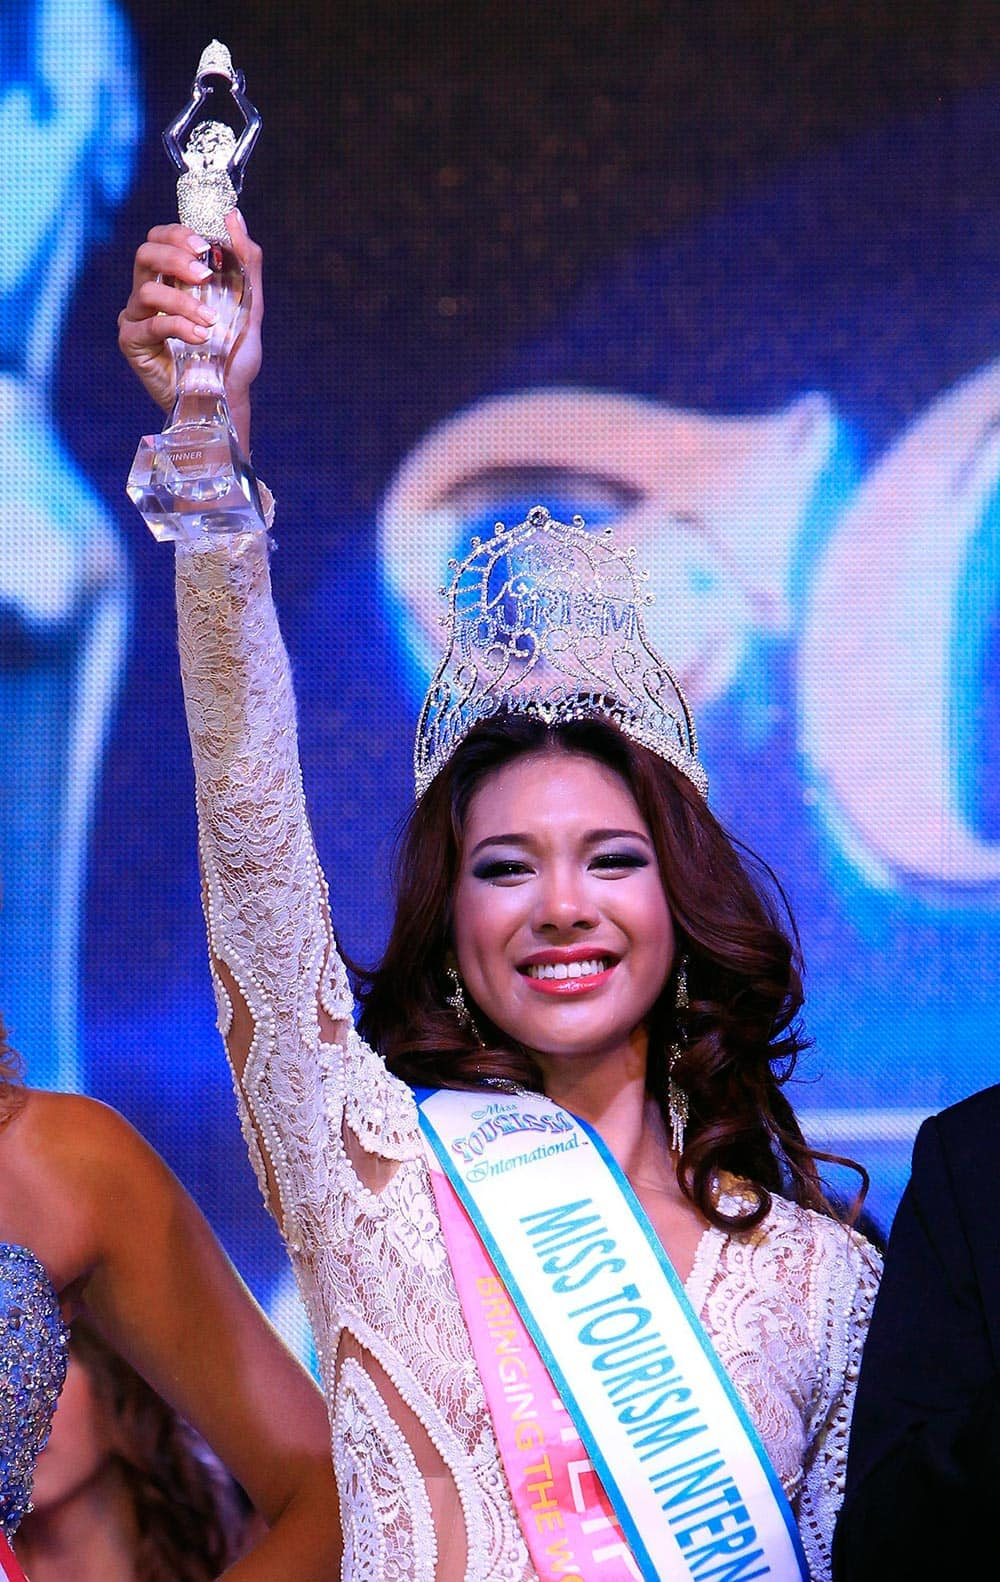 Angeli Dione Gomez of the Philippines shows off her trophy following her winning the Miss Tourism International 2013 World Final in Putrajaya, outside Kuala Lumpur, Malaysia.